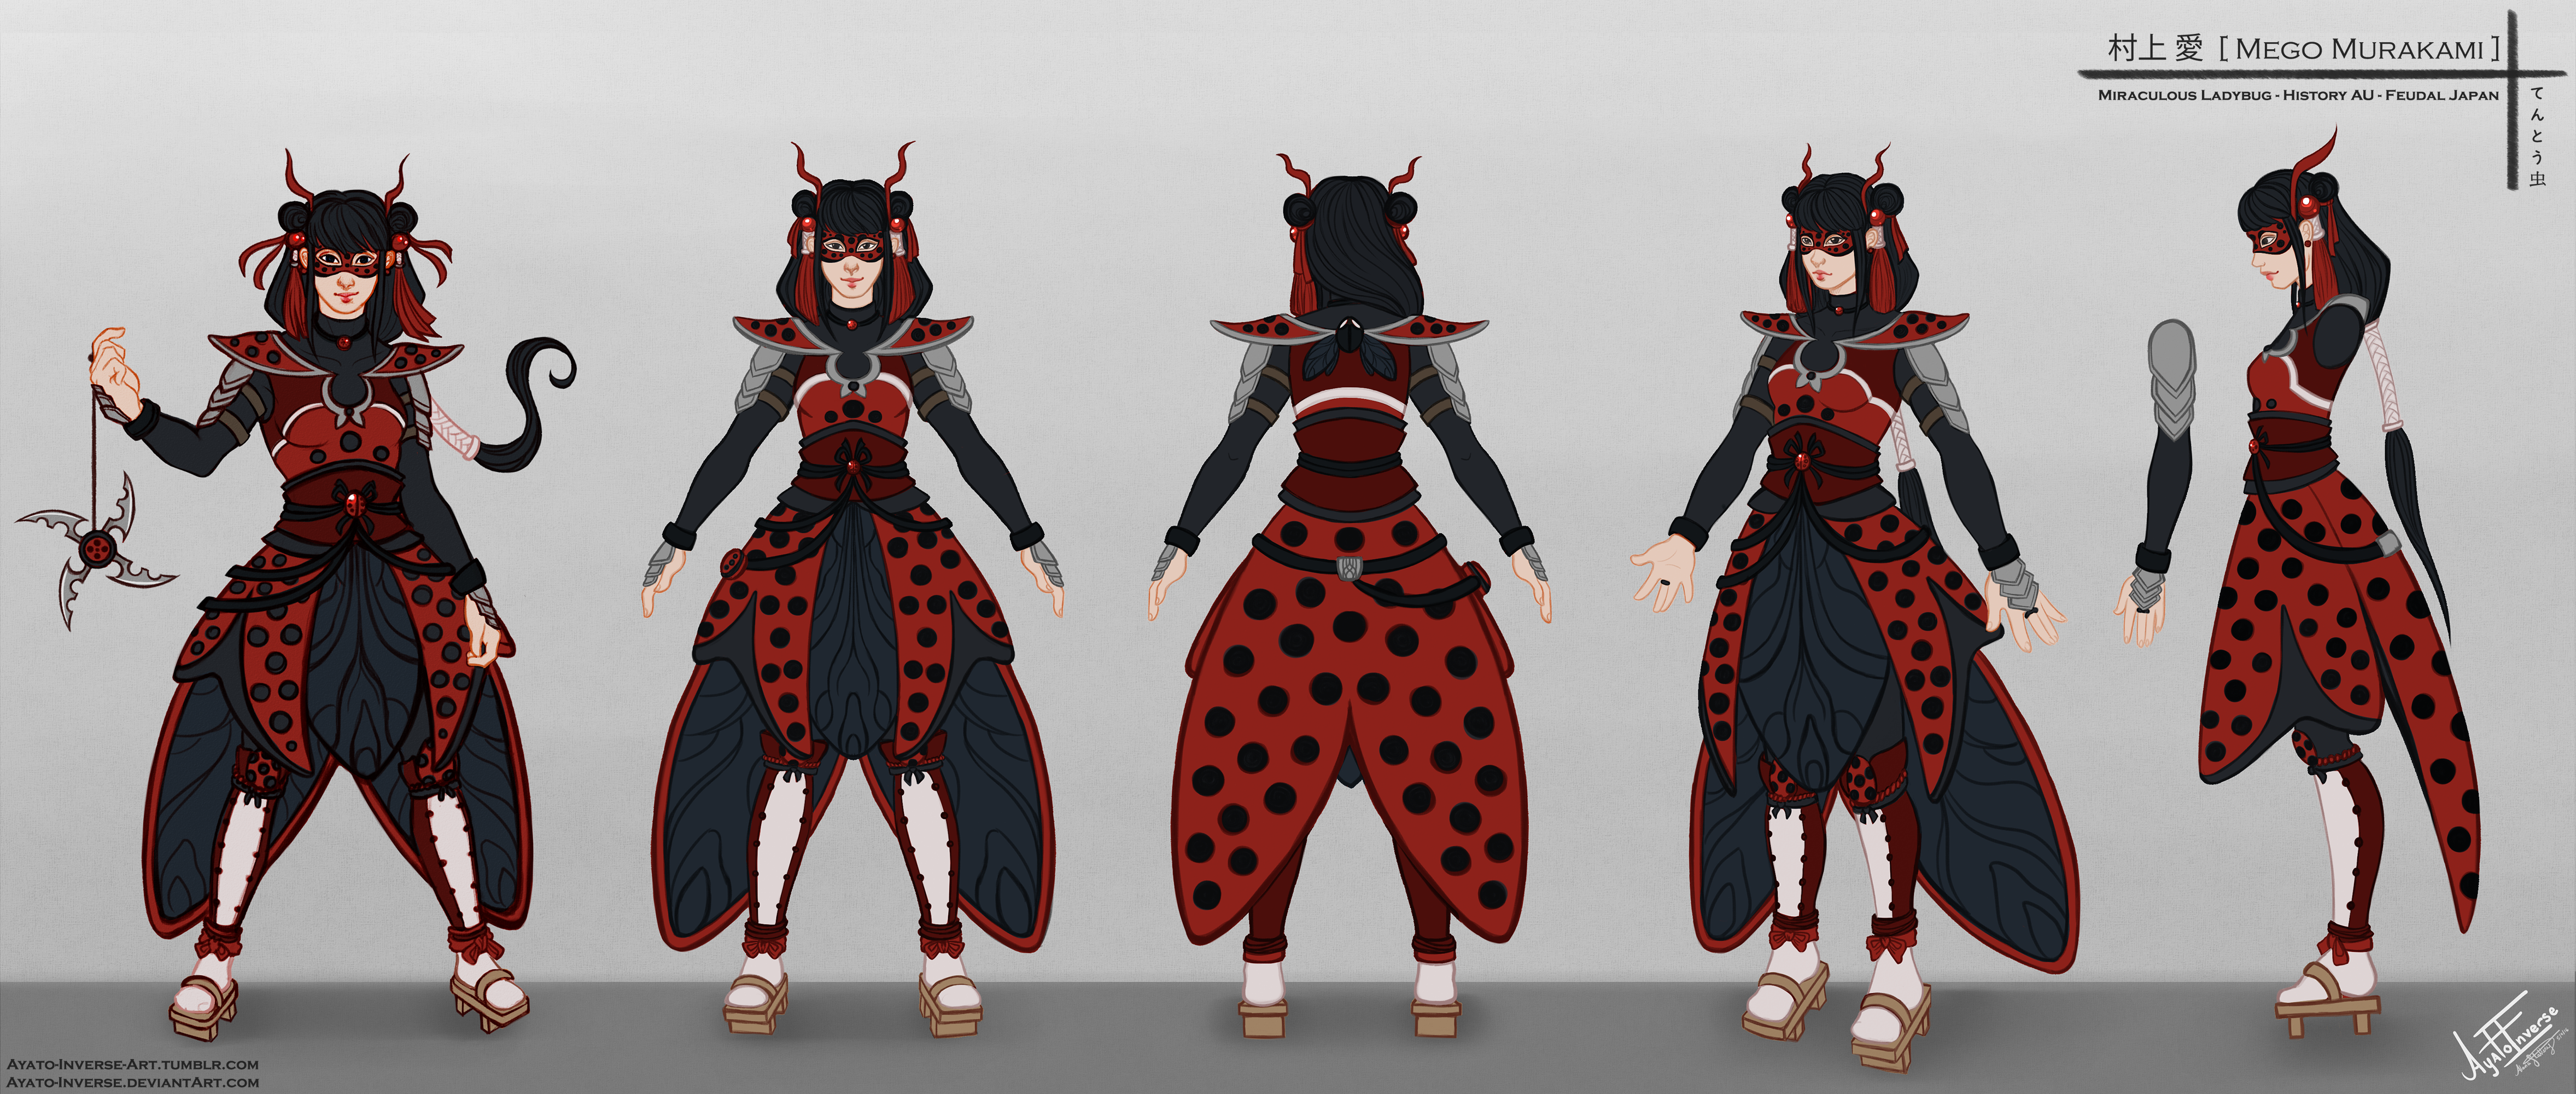 Character Design History : Miraculous ladybug mego character sheet by chisai